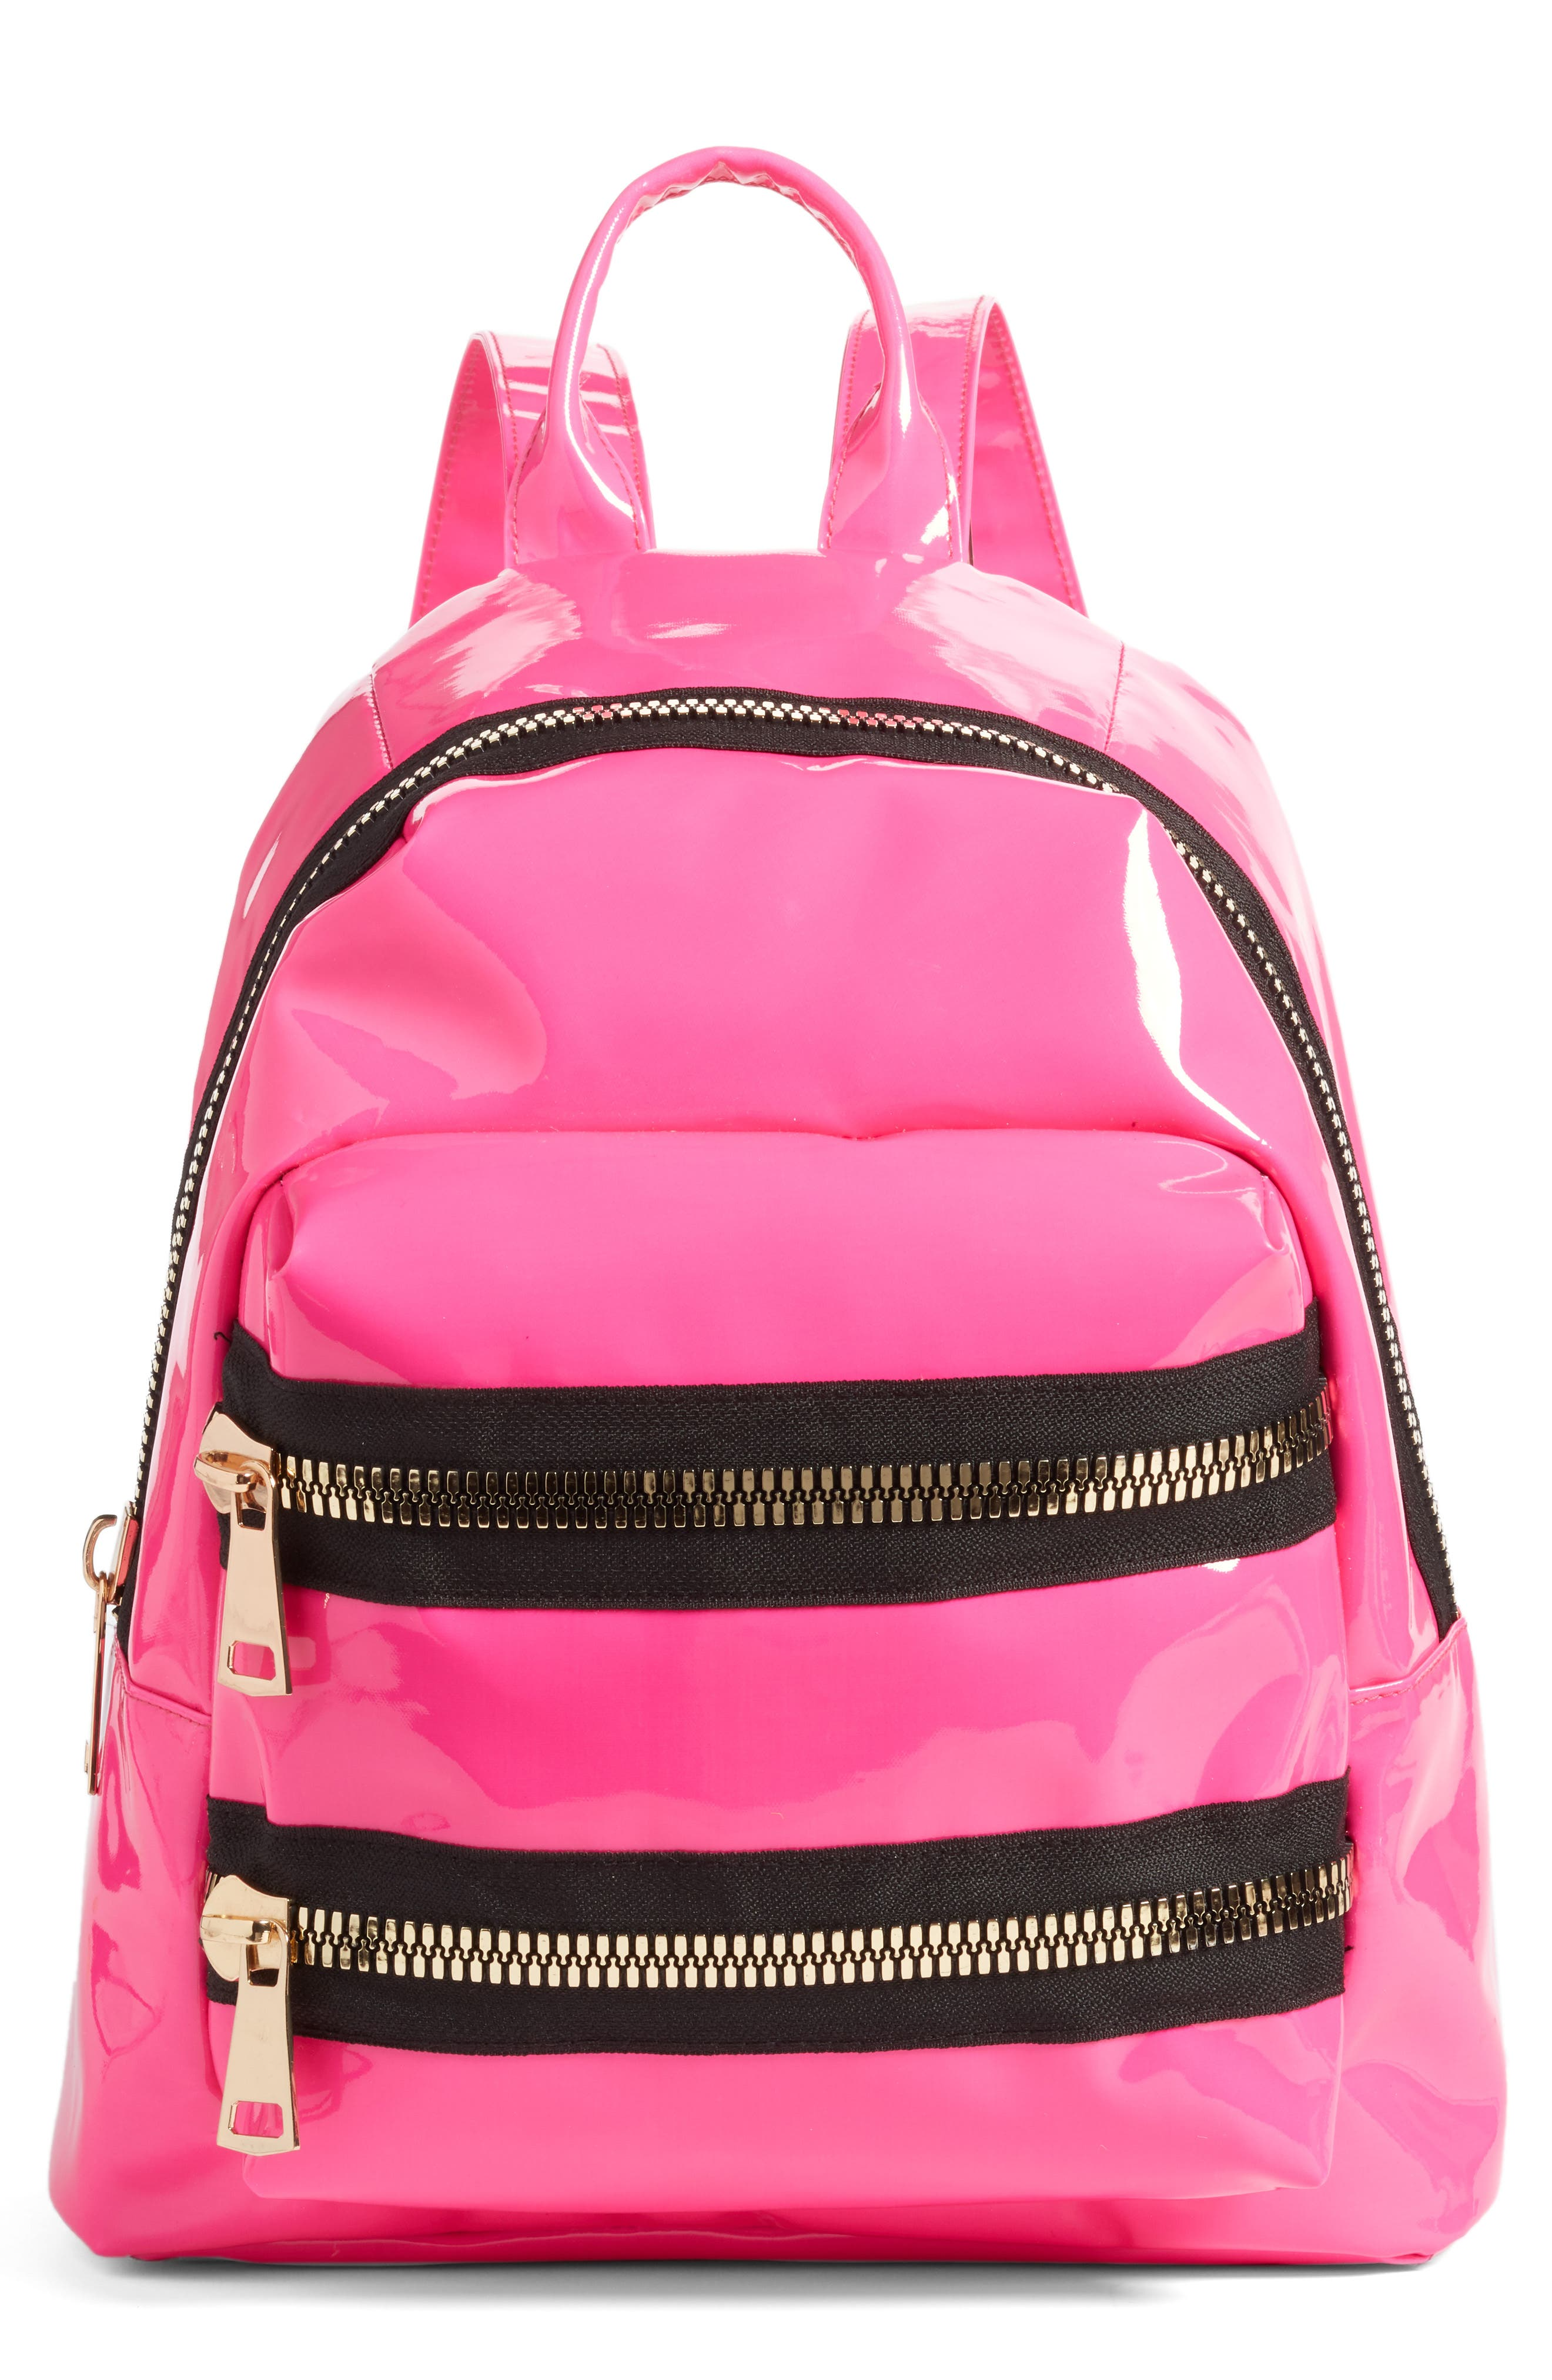 JANE & BERRY Double Zip Faux Patent Leather Backpack, Main, color, PINK